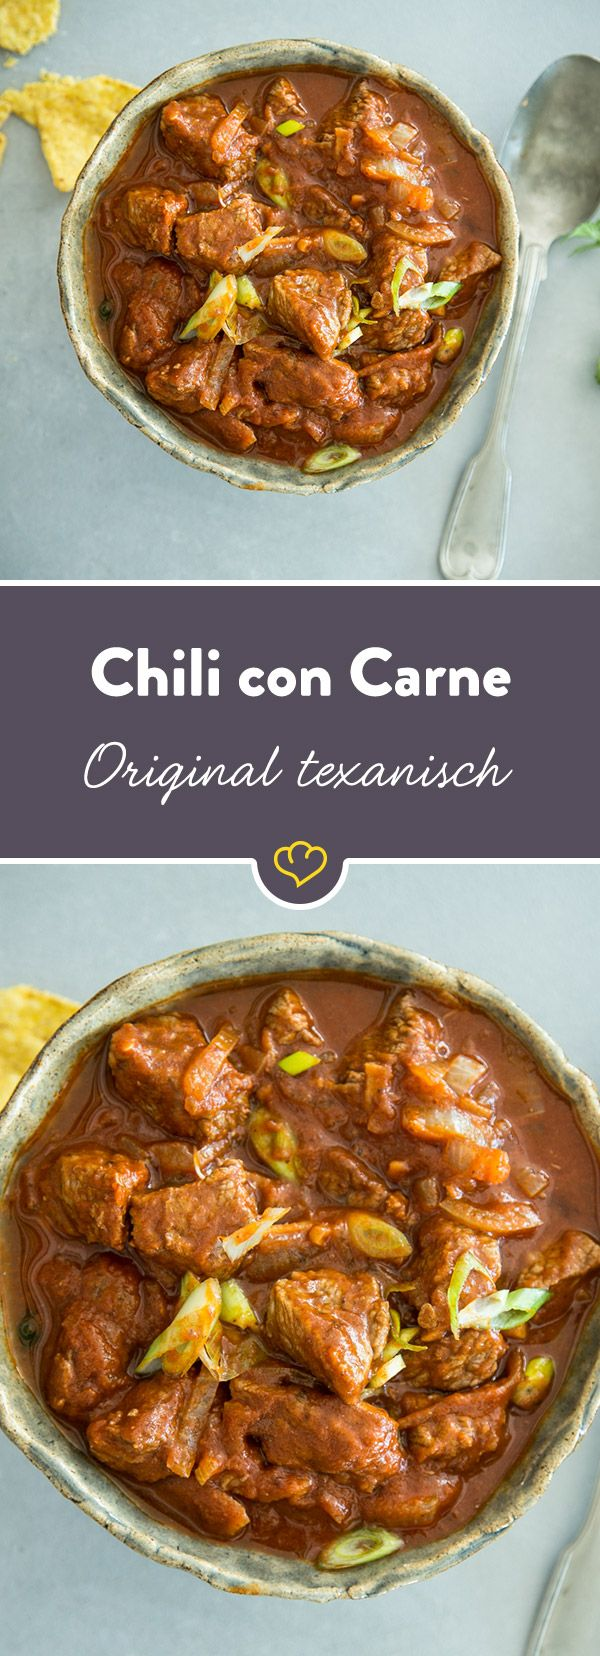 original texanisches chili con carne rezept winter rezepte pinterest essen chili und. Black Bedroom Furniture Sets. Home Design Ideas